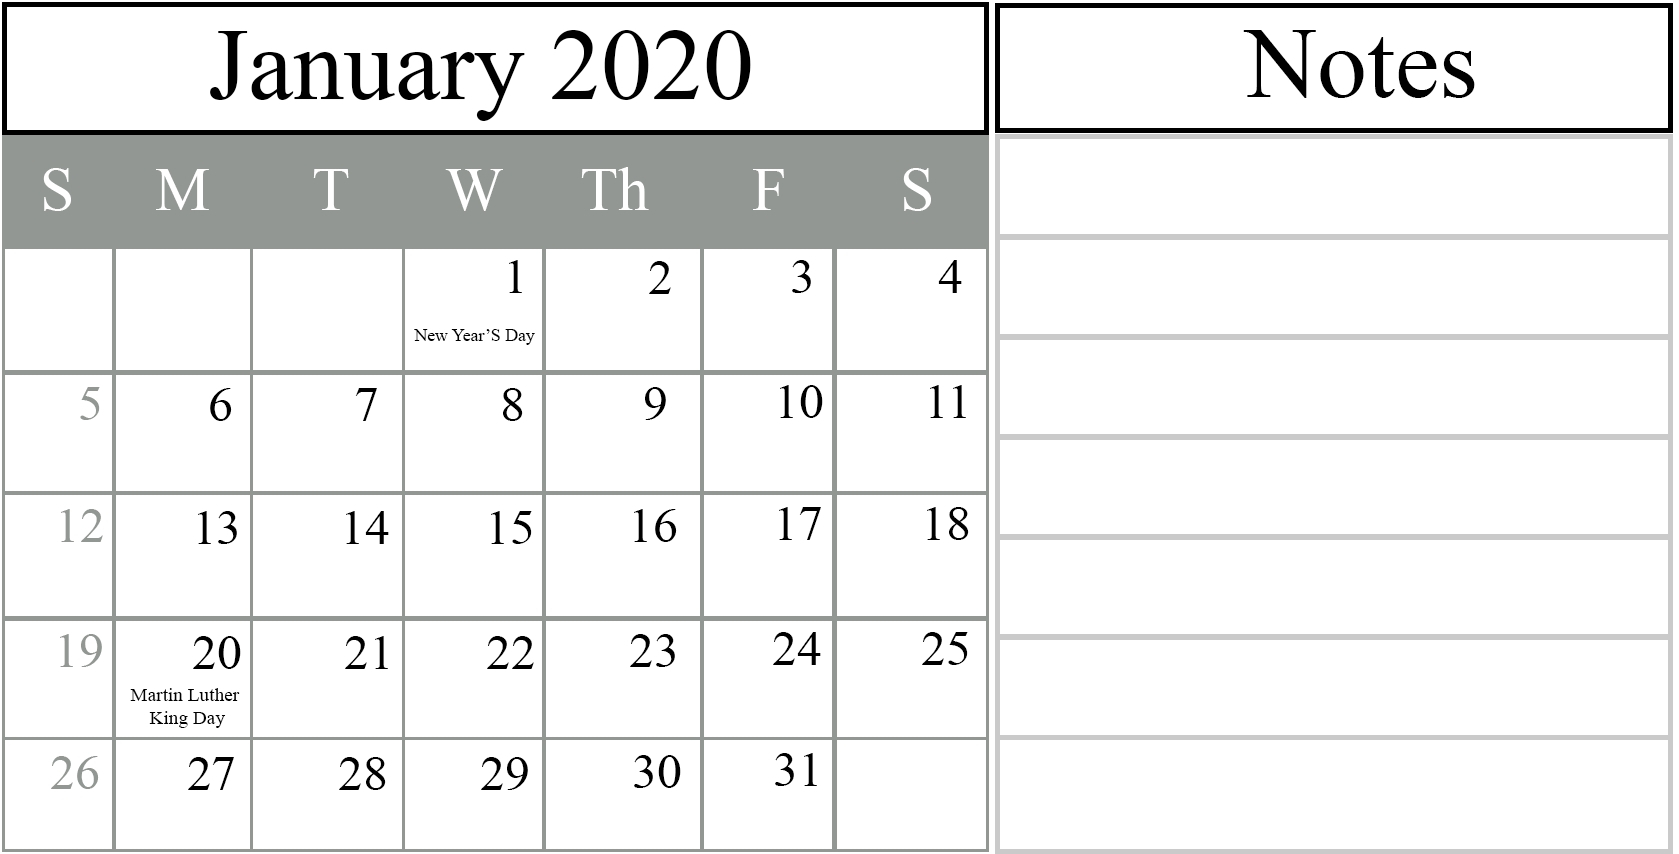 Nanakshahi Calendar 2020 January | Calendar Template Printable inside Khalsa Heera Jantri 2020 January